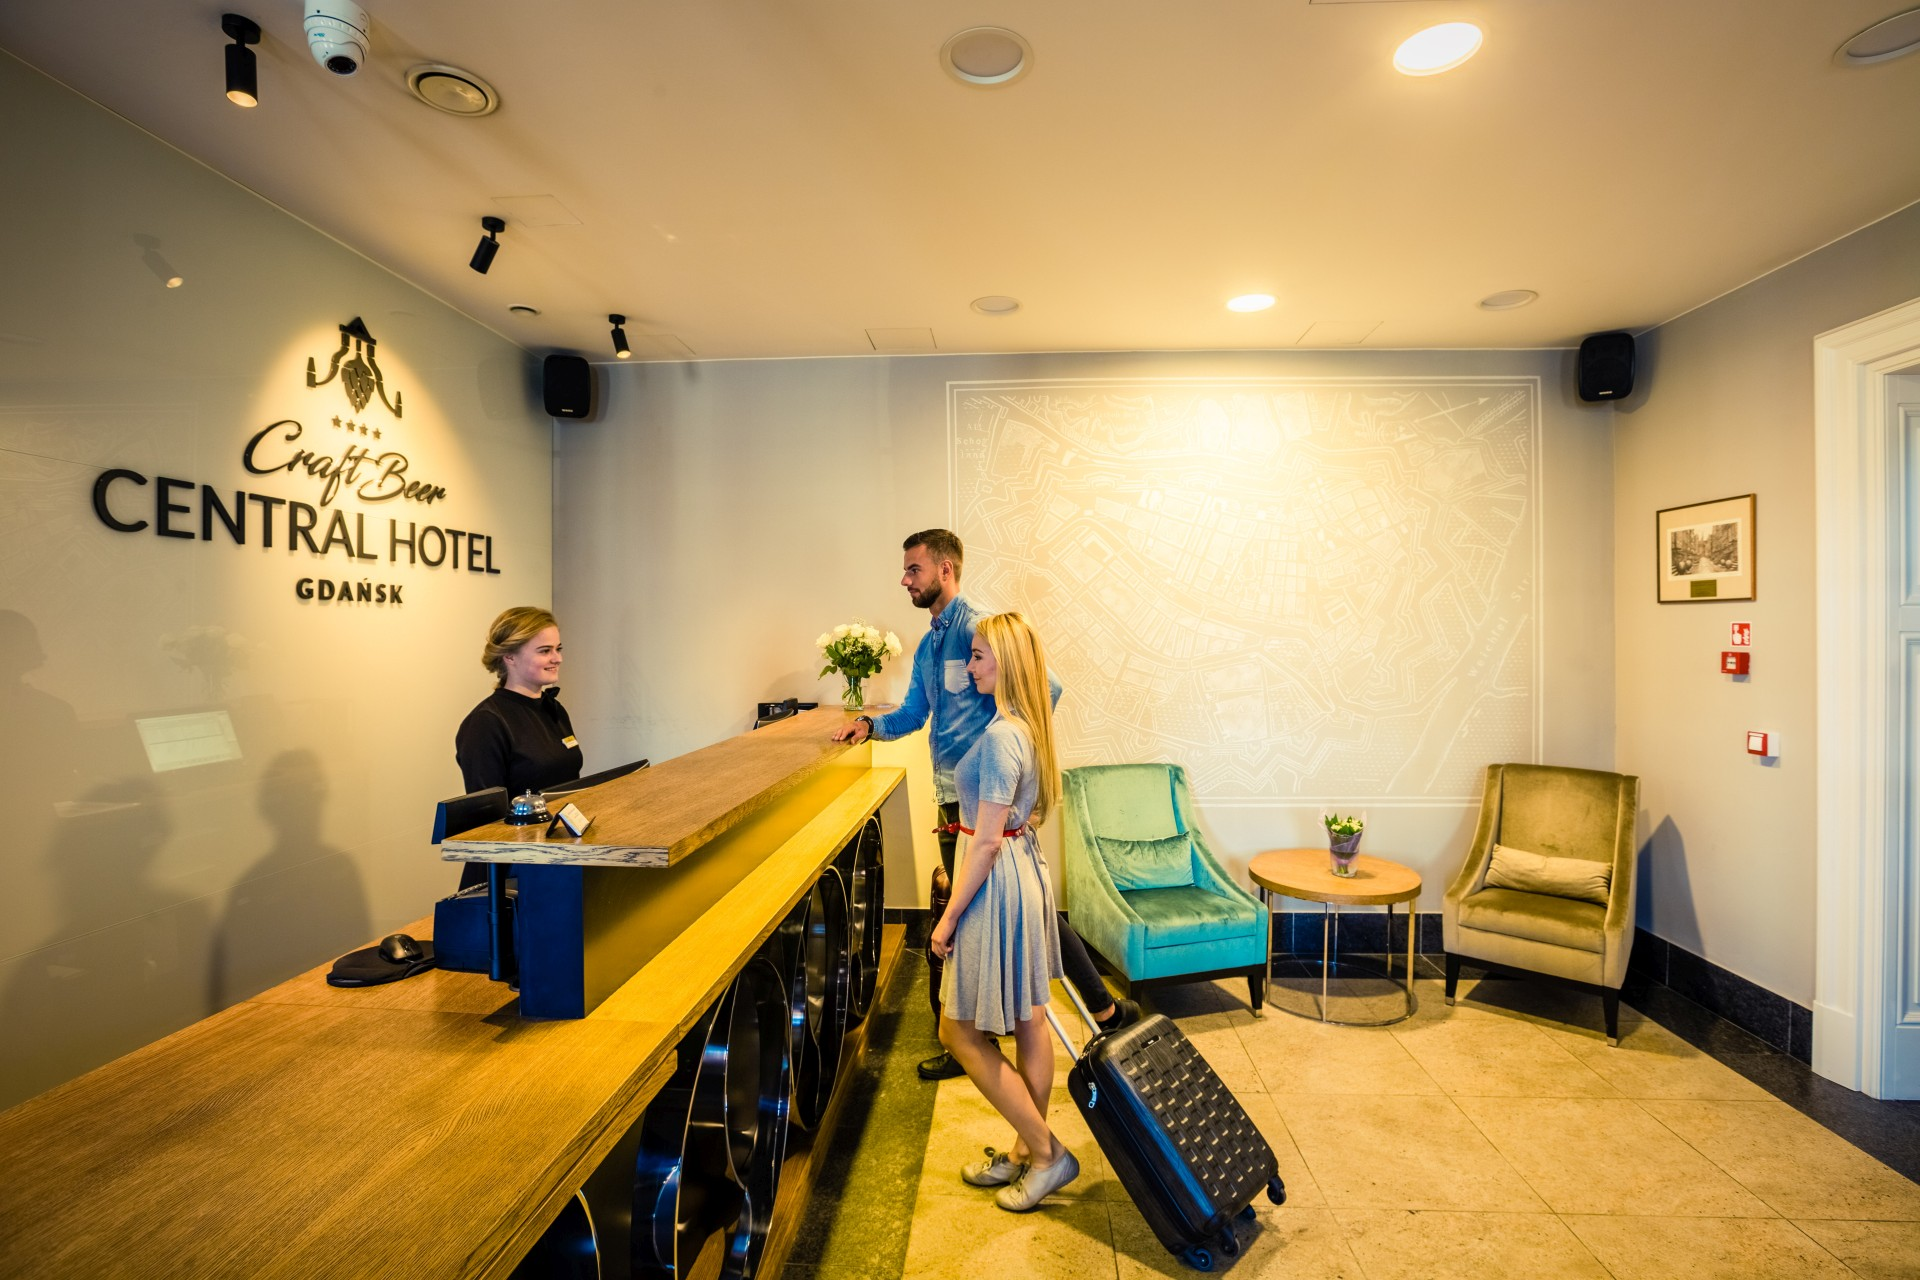 Craft Beer Central Hotel